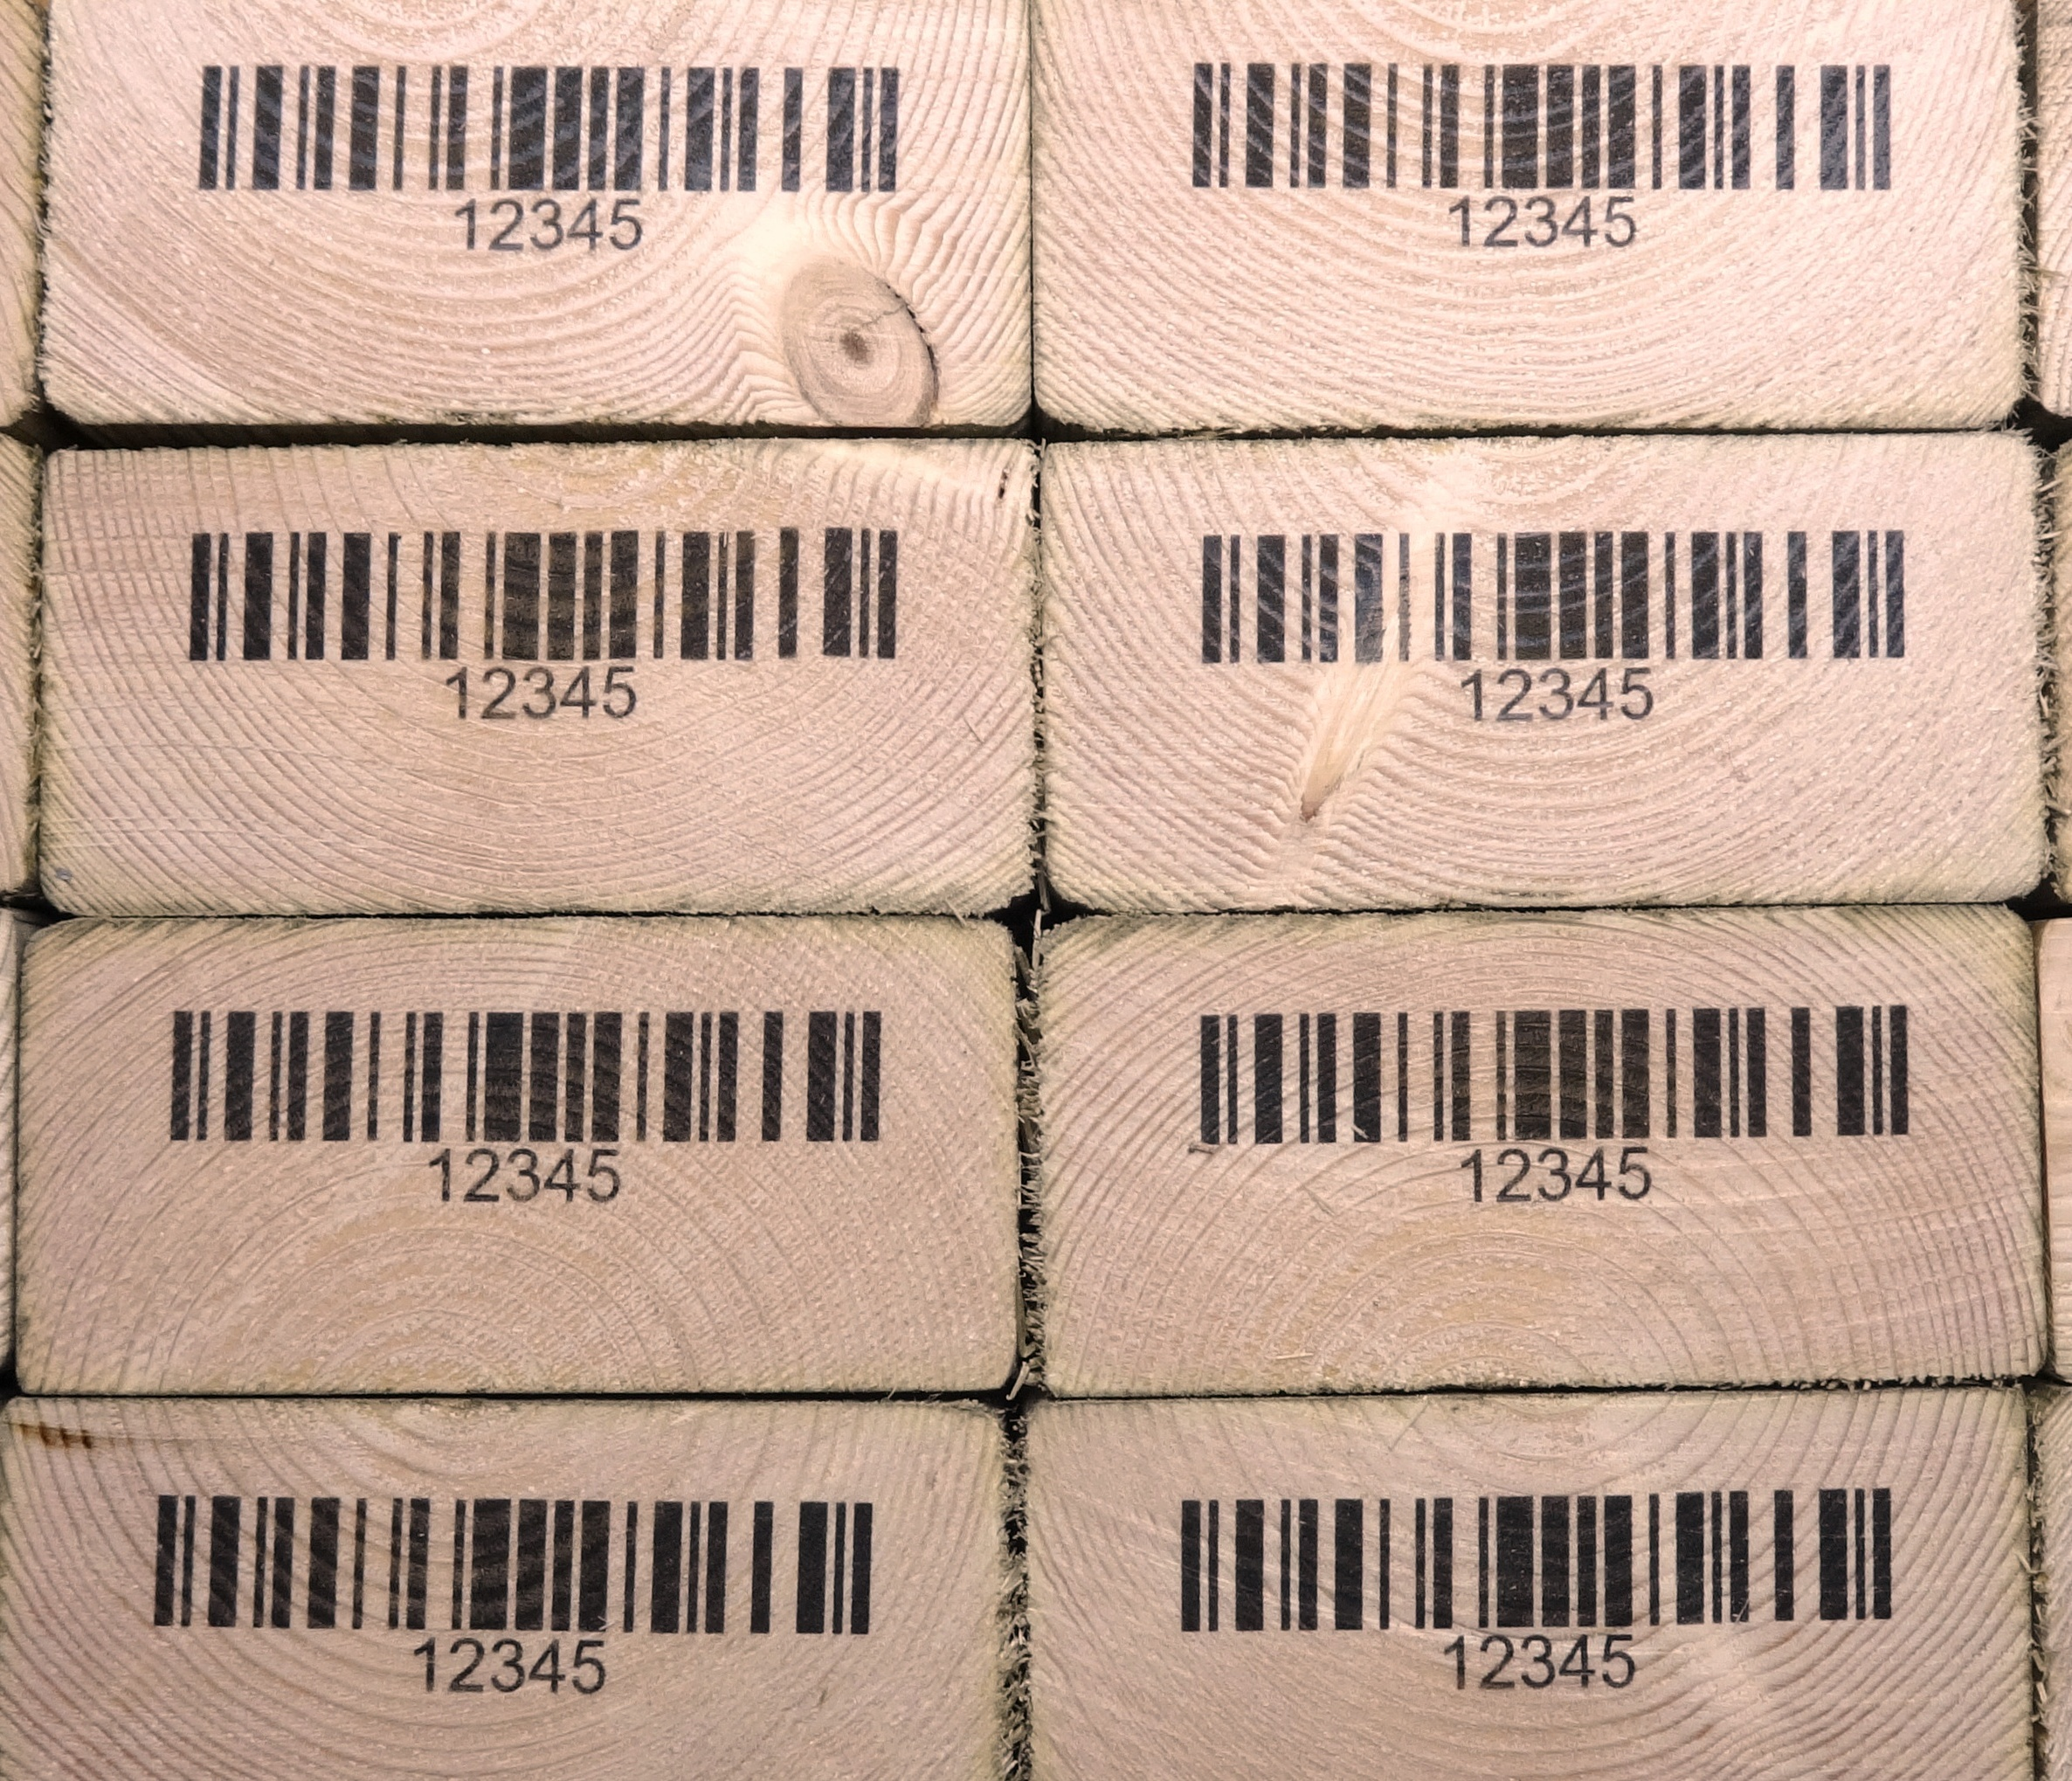 Barcodes on the end stamp -